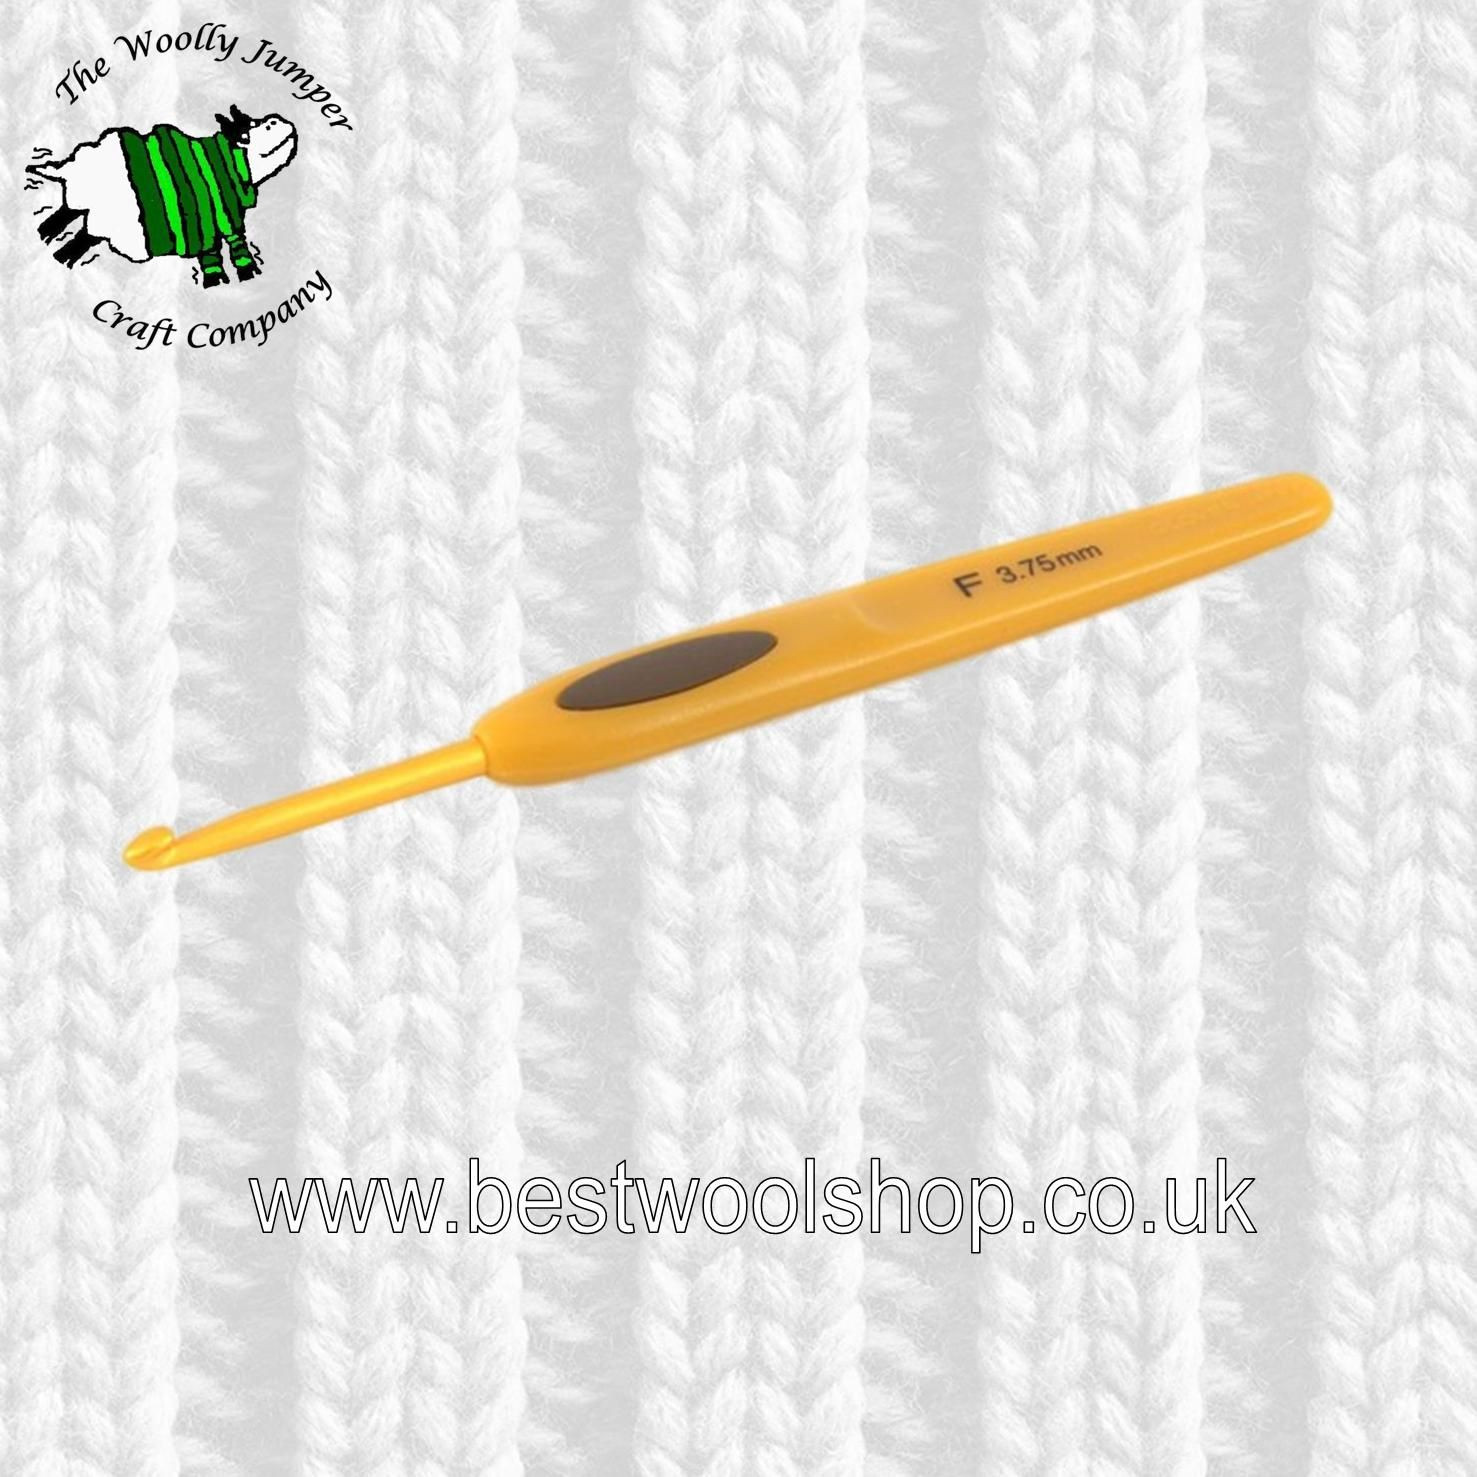 Elegant 3 75 Mm Clover soft touch Crochet Hook F Clover soft touch Crochet Hooks Of Beautiful Clover soft touch Crochet Hook Size D Walmart Clover soft touch Crochet Hooks